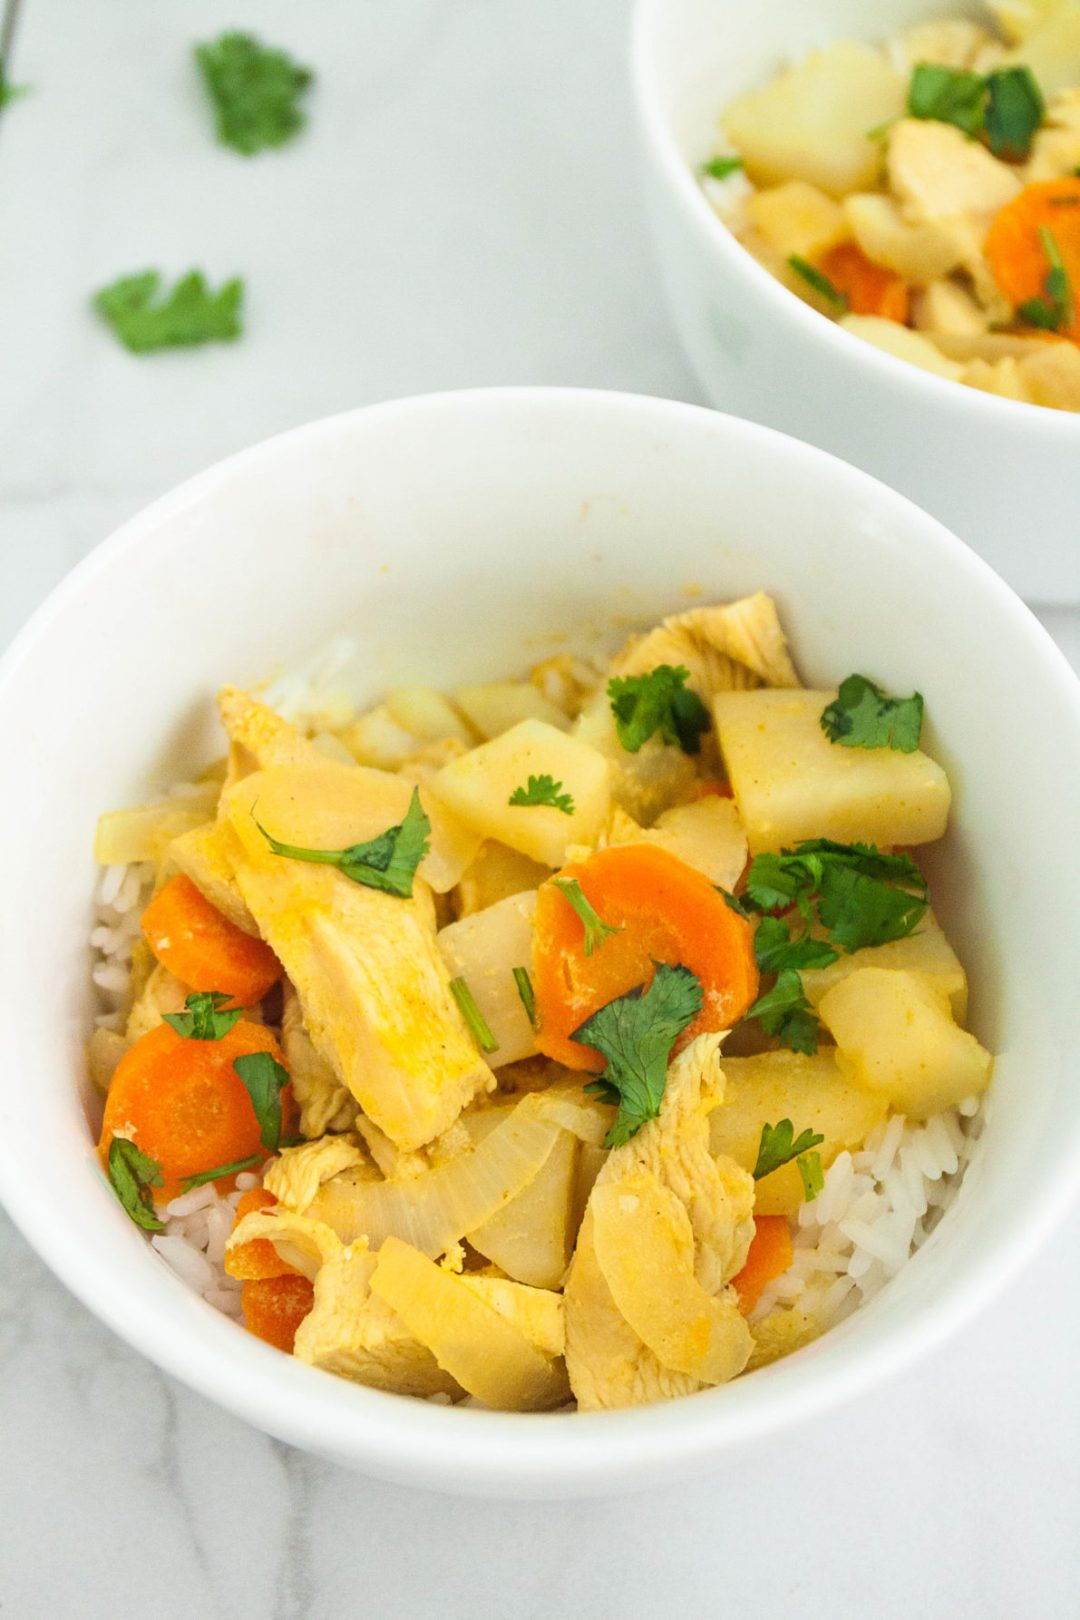 Yellow Thai Curry is a glorious combination of flavors and textures. Veggies, coconut milk, and curry paste help to create the ultimate comfort food dish.